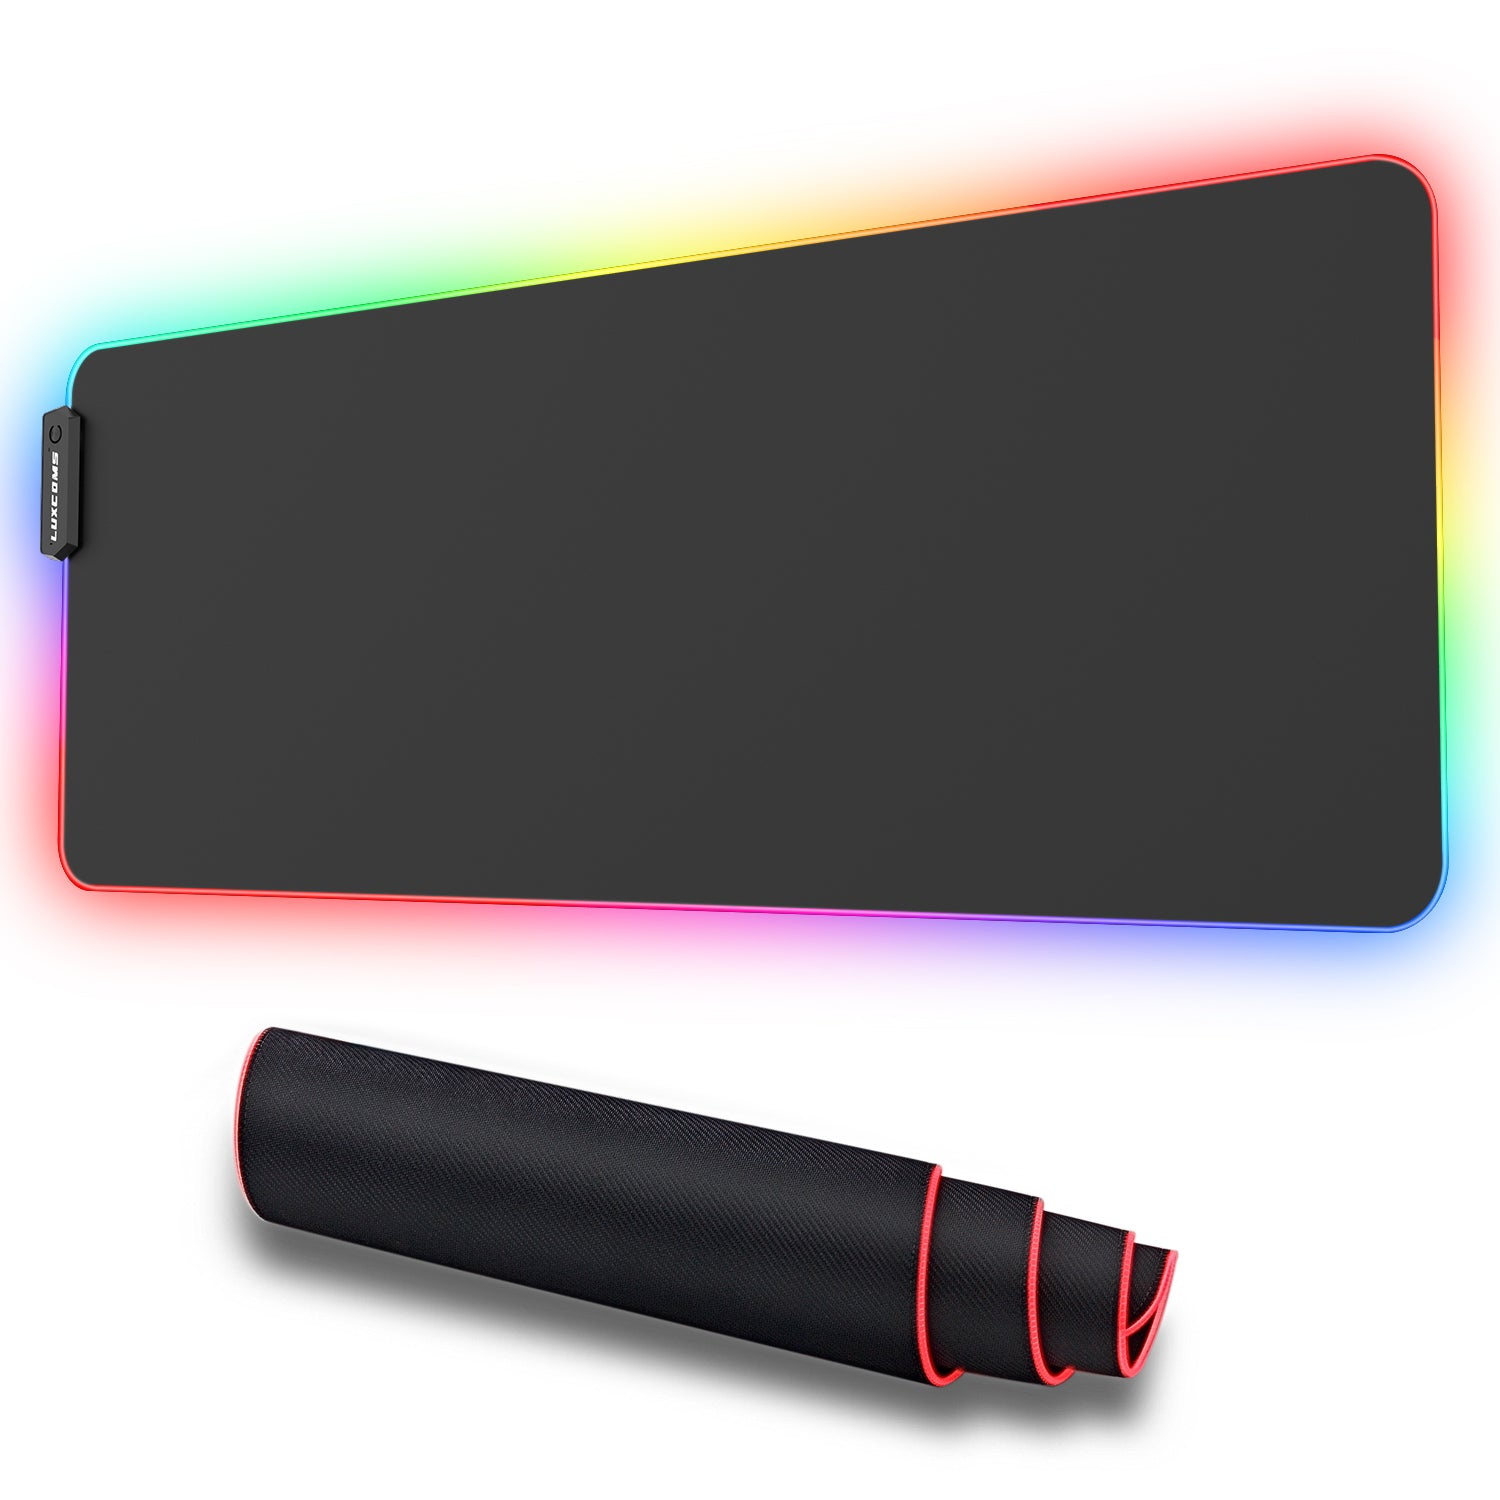 LUXCOMS RGB Soft Gaming Mouse Pad Large, Oversized Glowing Led Extended Mousepad ,Non-Slip Rubber Base Computer Keyboard Pad Mat,31.5X 11.8in